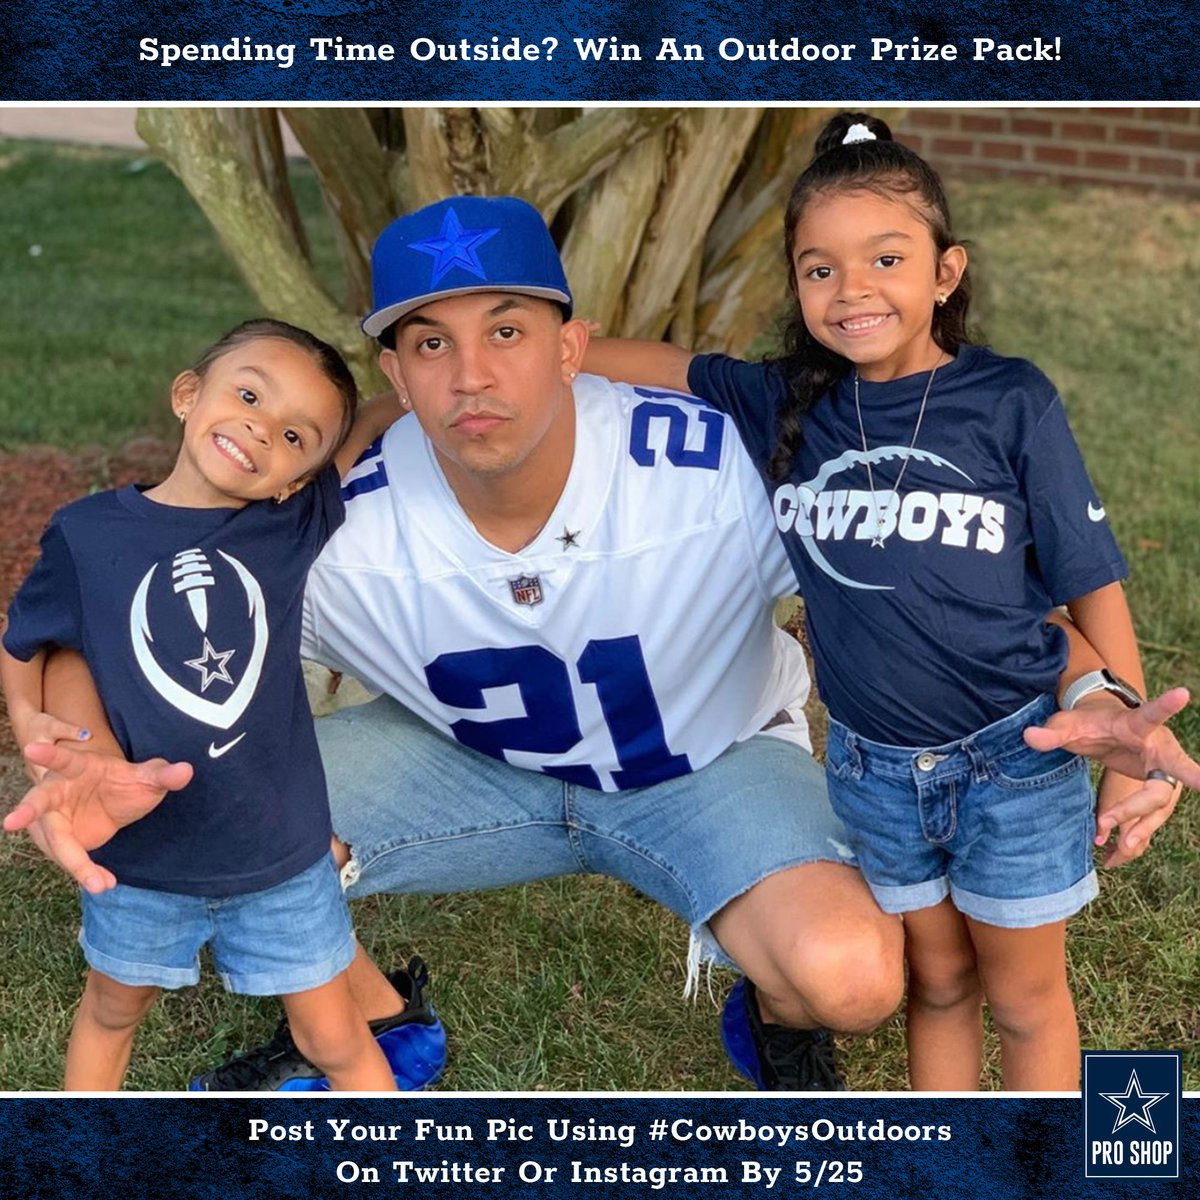 ICYMI: a 🆕 #DallasCowboys prize pack is at stake!  1. Follow us 2. Post a pic of your time spent outside in your #CowboysNation gear using #CowboysOutdoors 3. You could win a Pro Shop package of awesome outdoor gear!  Enter by Monday 5/25. Rules: https://t.co/7JX0xUFgq5 https://t.co/Fb4qpmHWBU